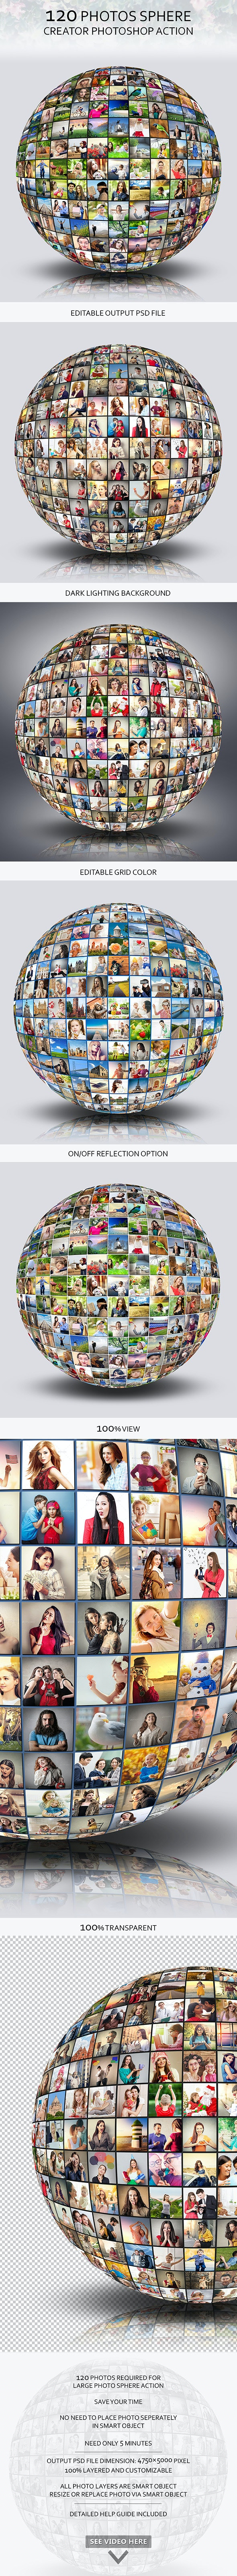 120 Photos Sphere Creator by towhid123griver | GraphicRiver